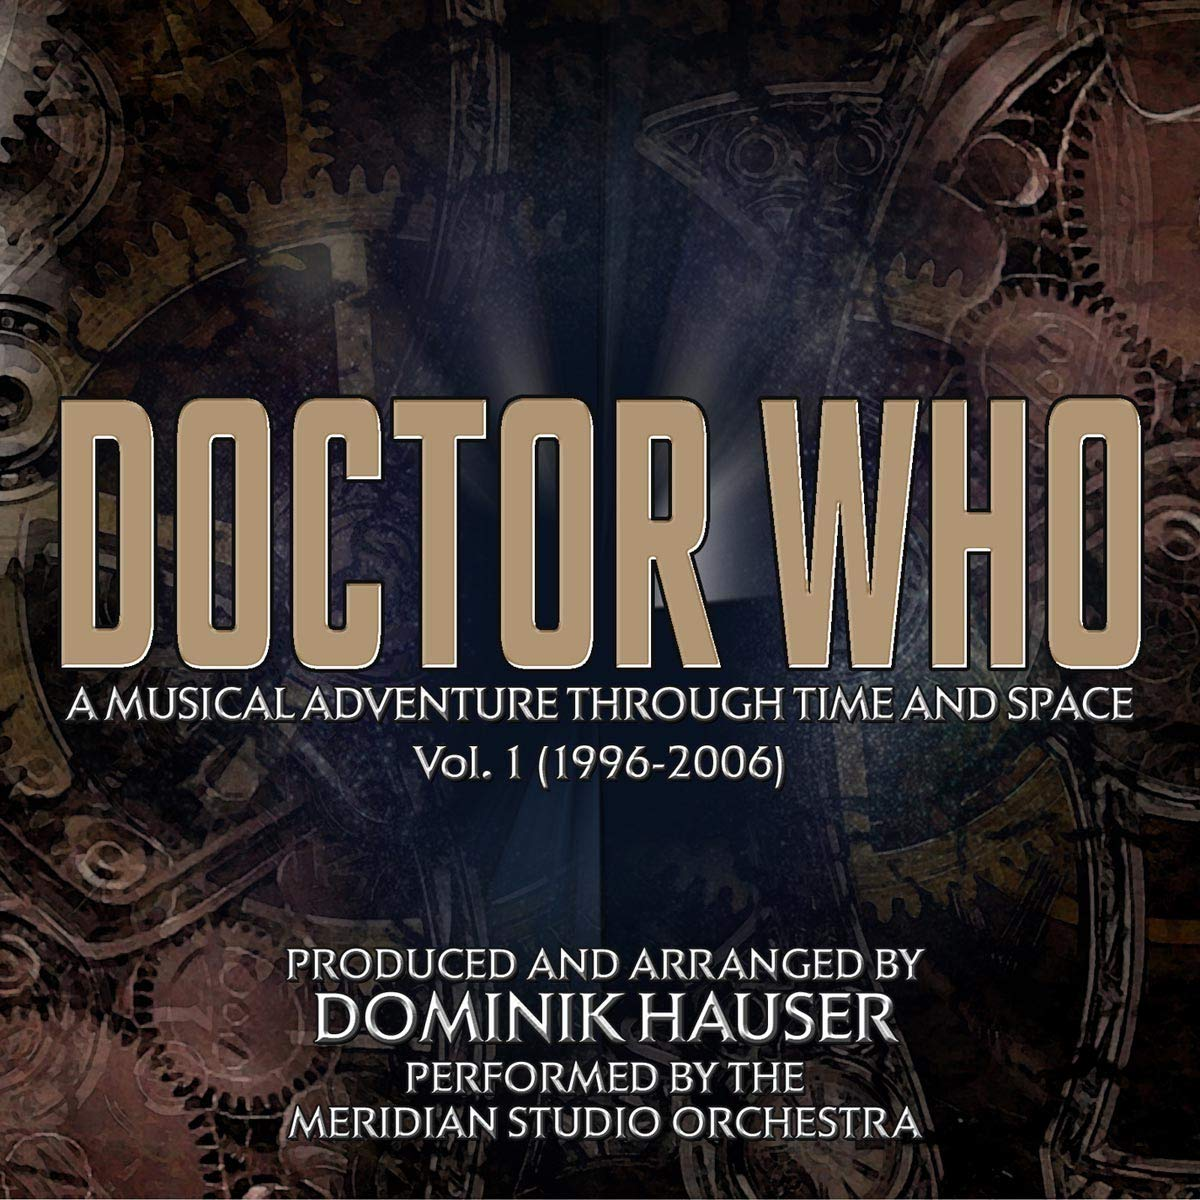 Doctor Who: A Year-end annual Under blast sales account Musical Adventure Through Space Time 1 Volume and